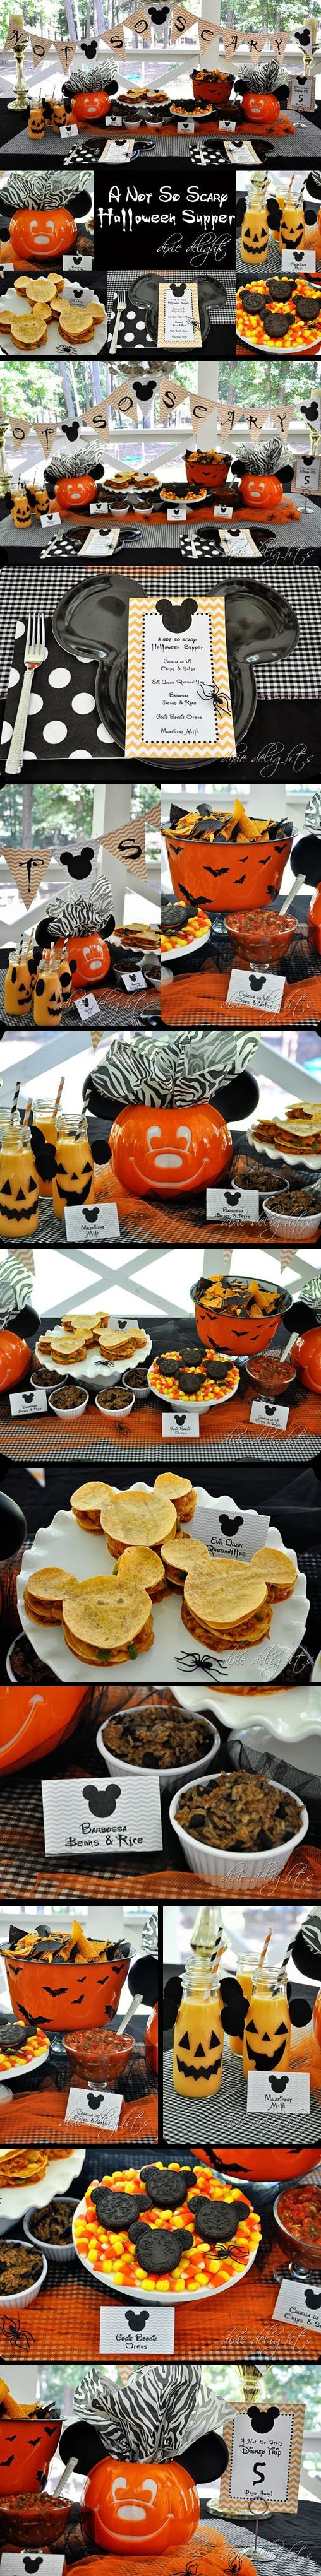 Disney Halloween Party | Some great ideas for a Mickey's Not-So-Scare Halloween Supper Buffet.  (I have seen the Mickey Mouse shaped plates at Target.)